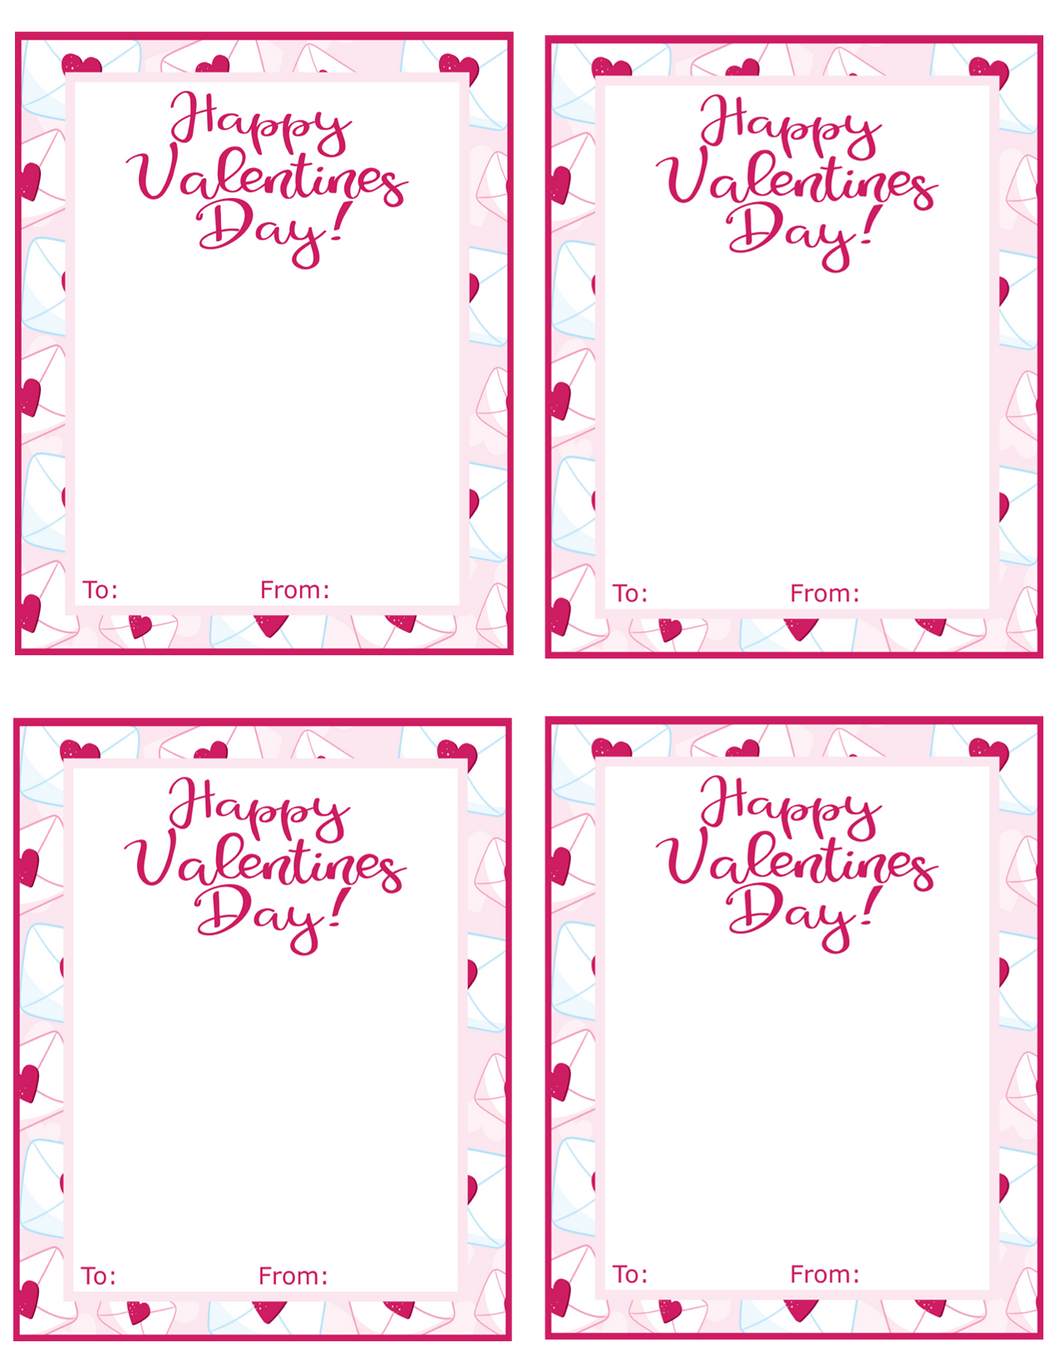 Happy Valentines Day w/TF Card 4x5 - Dots and Bows Designs